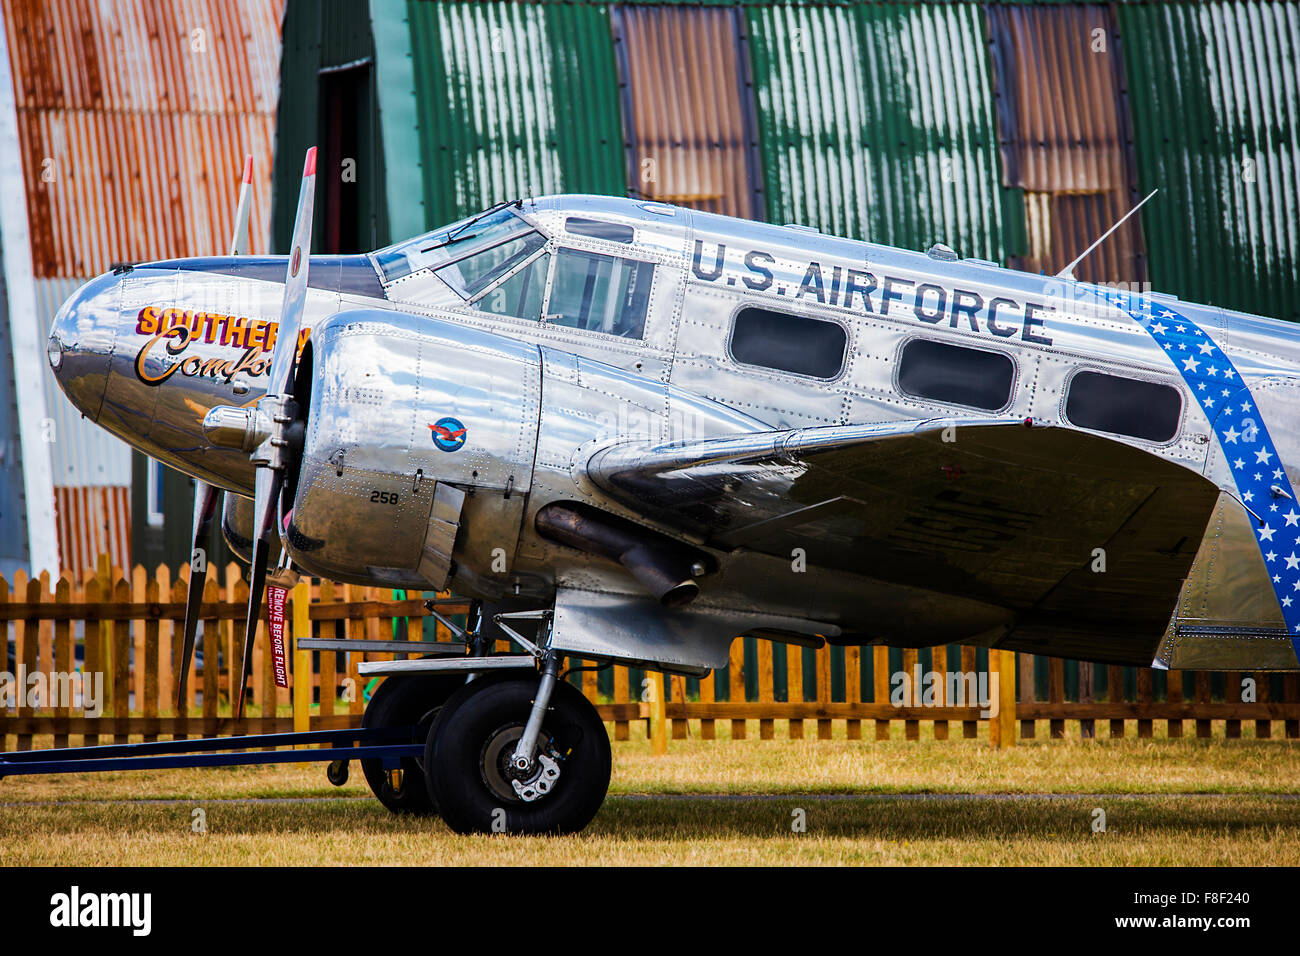 Beechcraft C-45H Expeditor parked during Duxford Air Show next to a hangar at Duxford Airfield - Stock Image